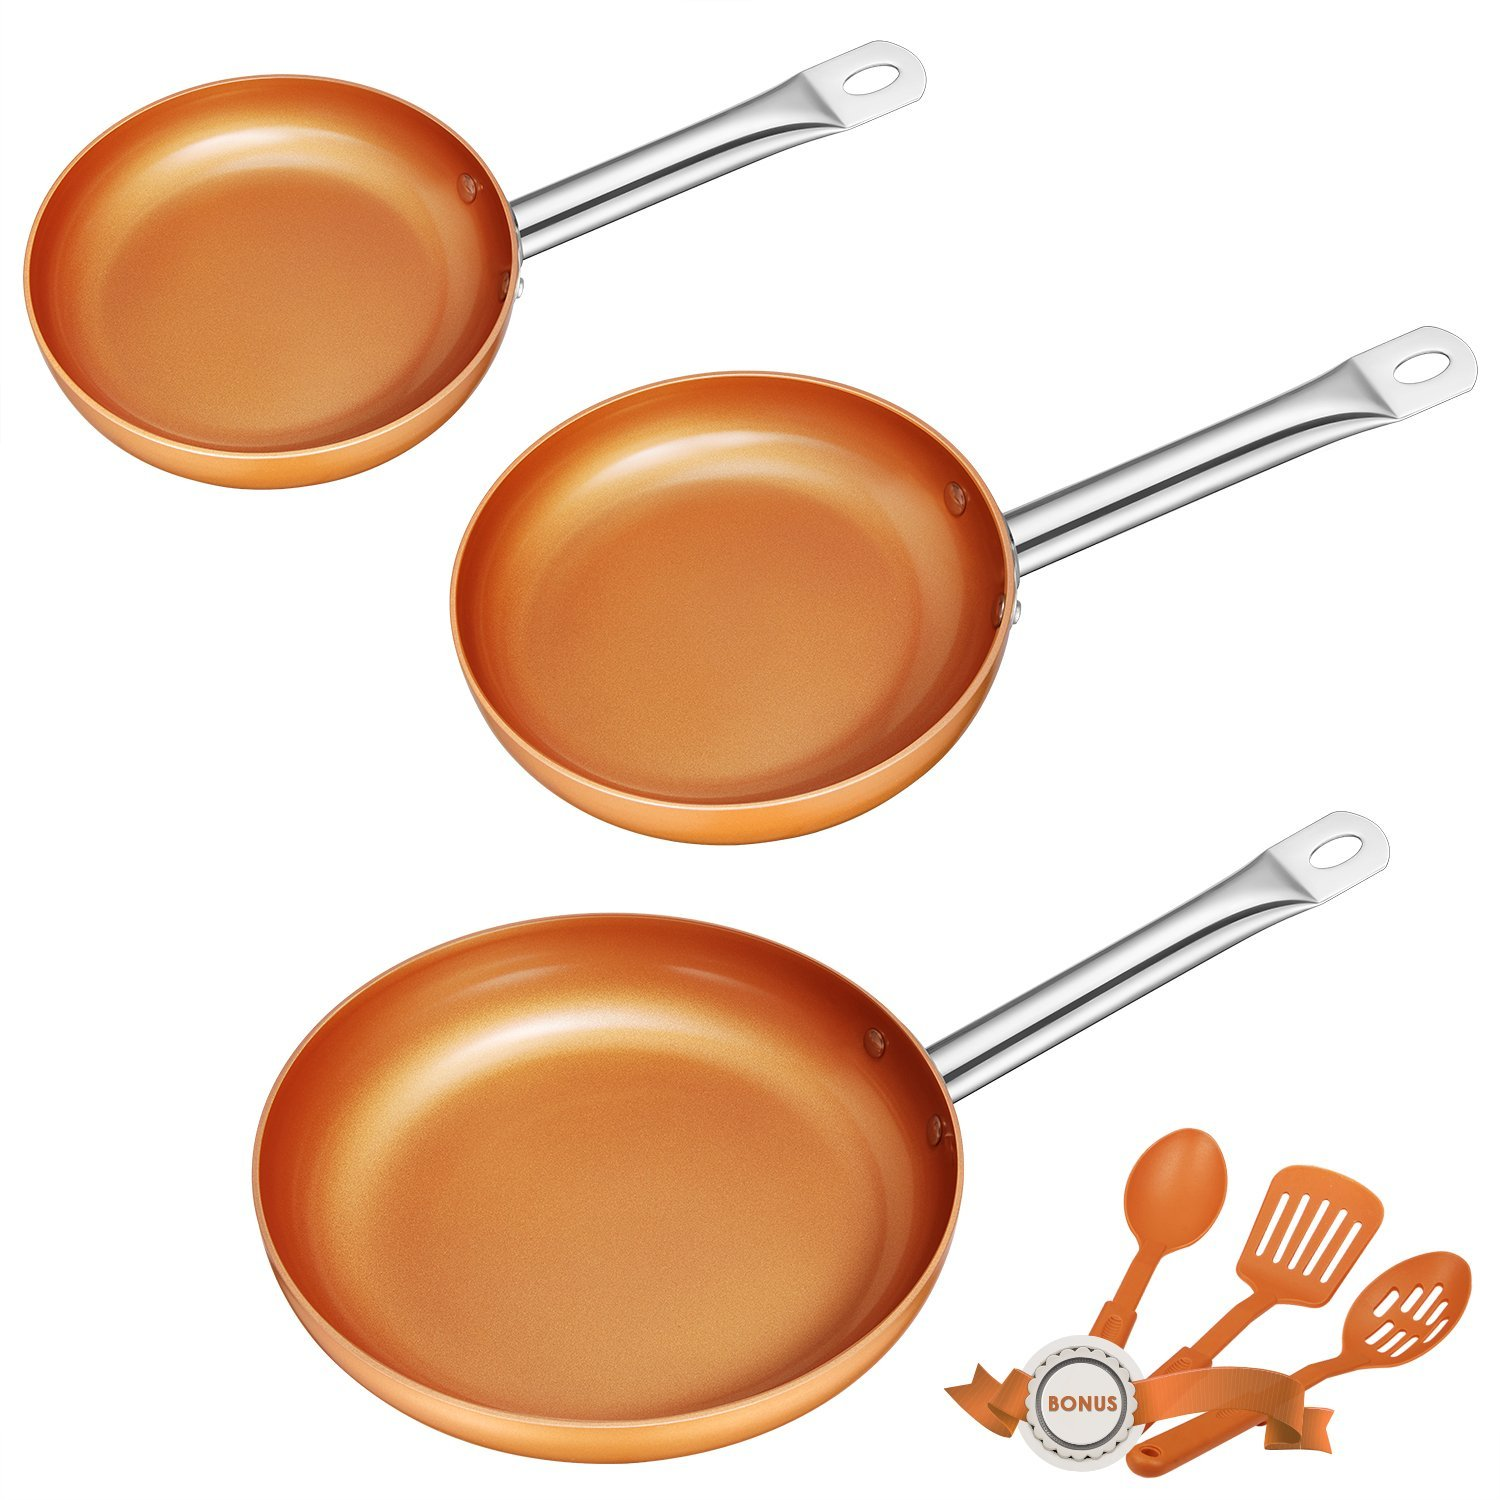 Deik Frying Pan Set, Copper Style Non Stick Aluminum Omelette Fry Pan 8 inch, Saute Pan 9.5 inch, Chef Pan 11 inch, PFOA Free, Dishwasher and Oven Safe Cookware Set 6 pcs with cooking utensils